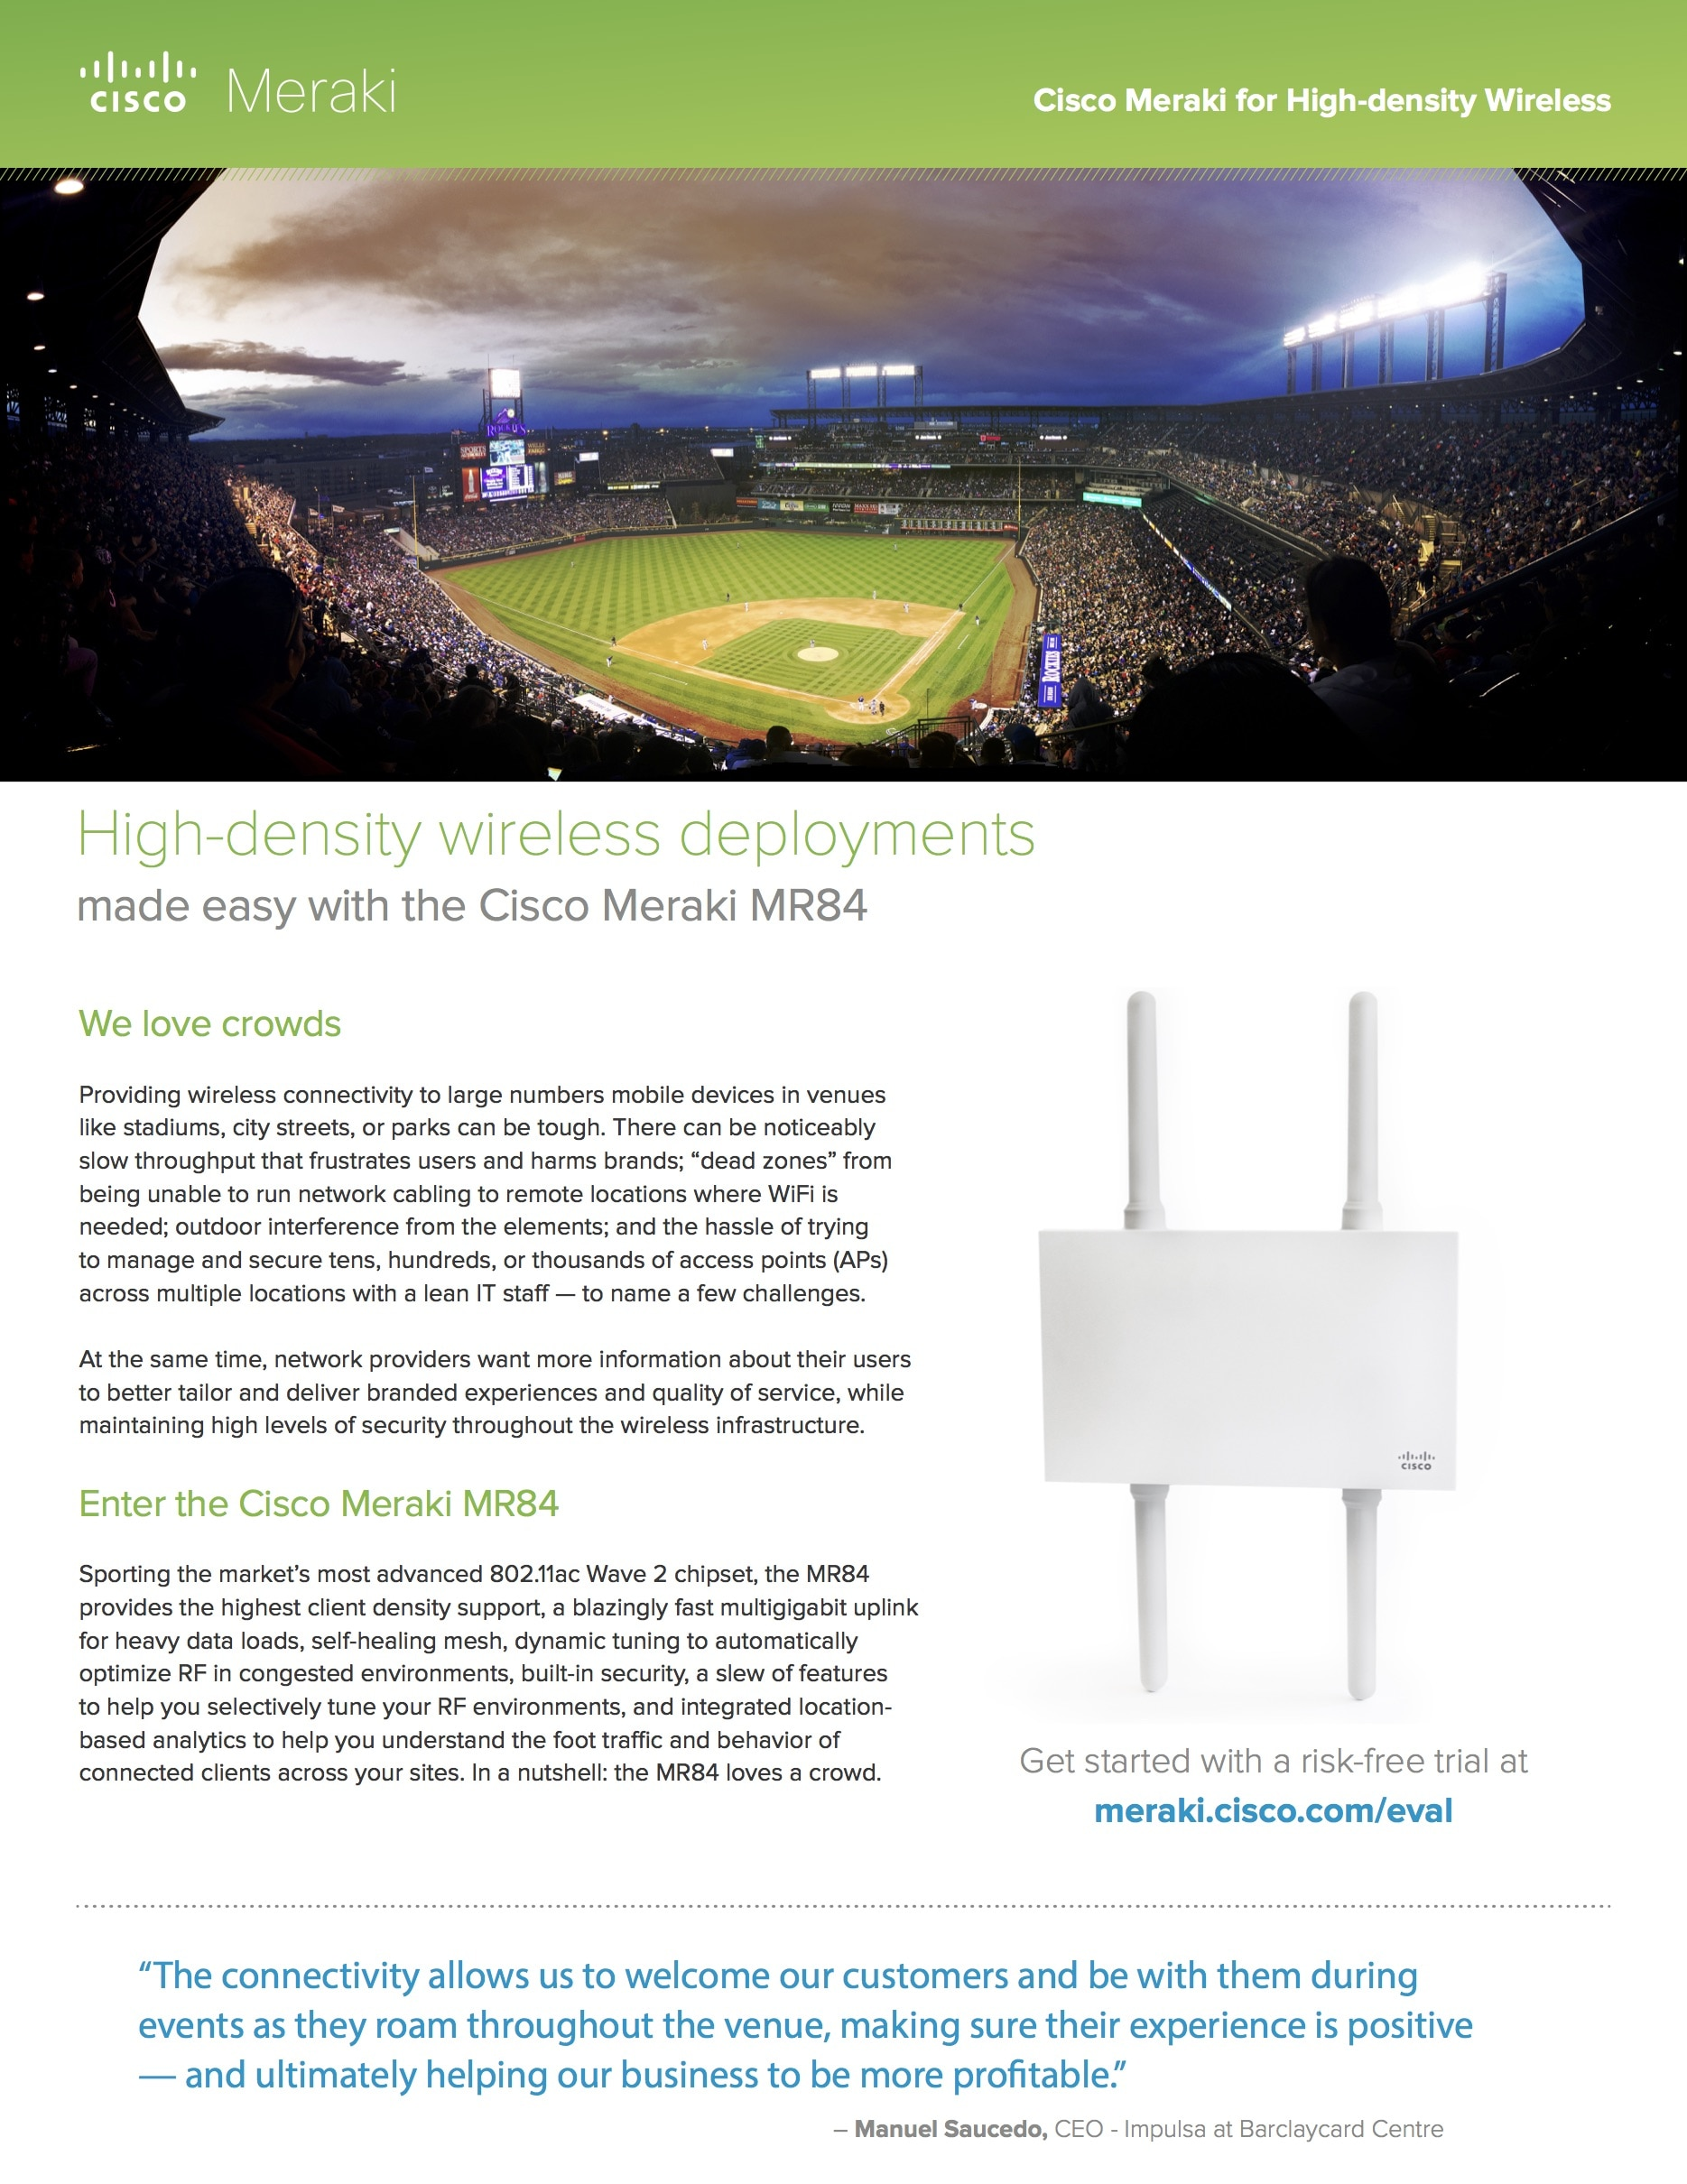 Meraki for High-density Wireless